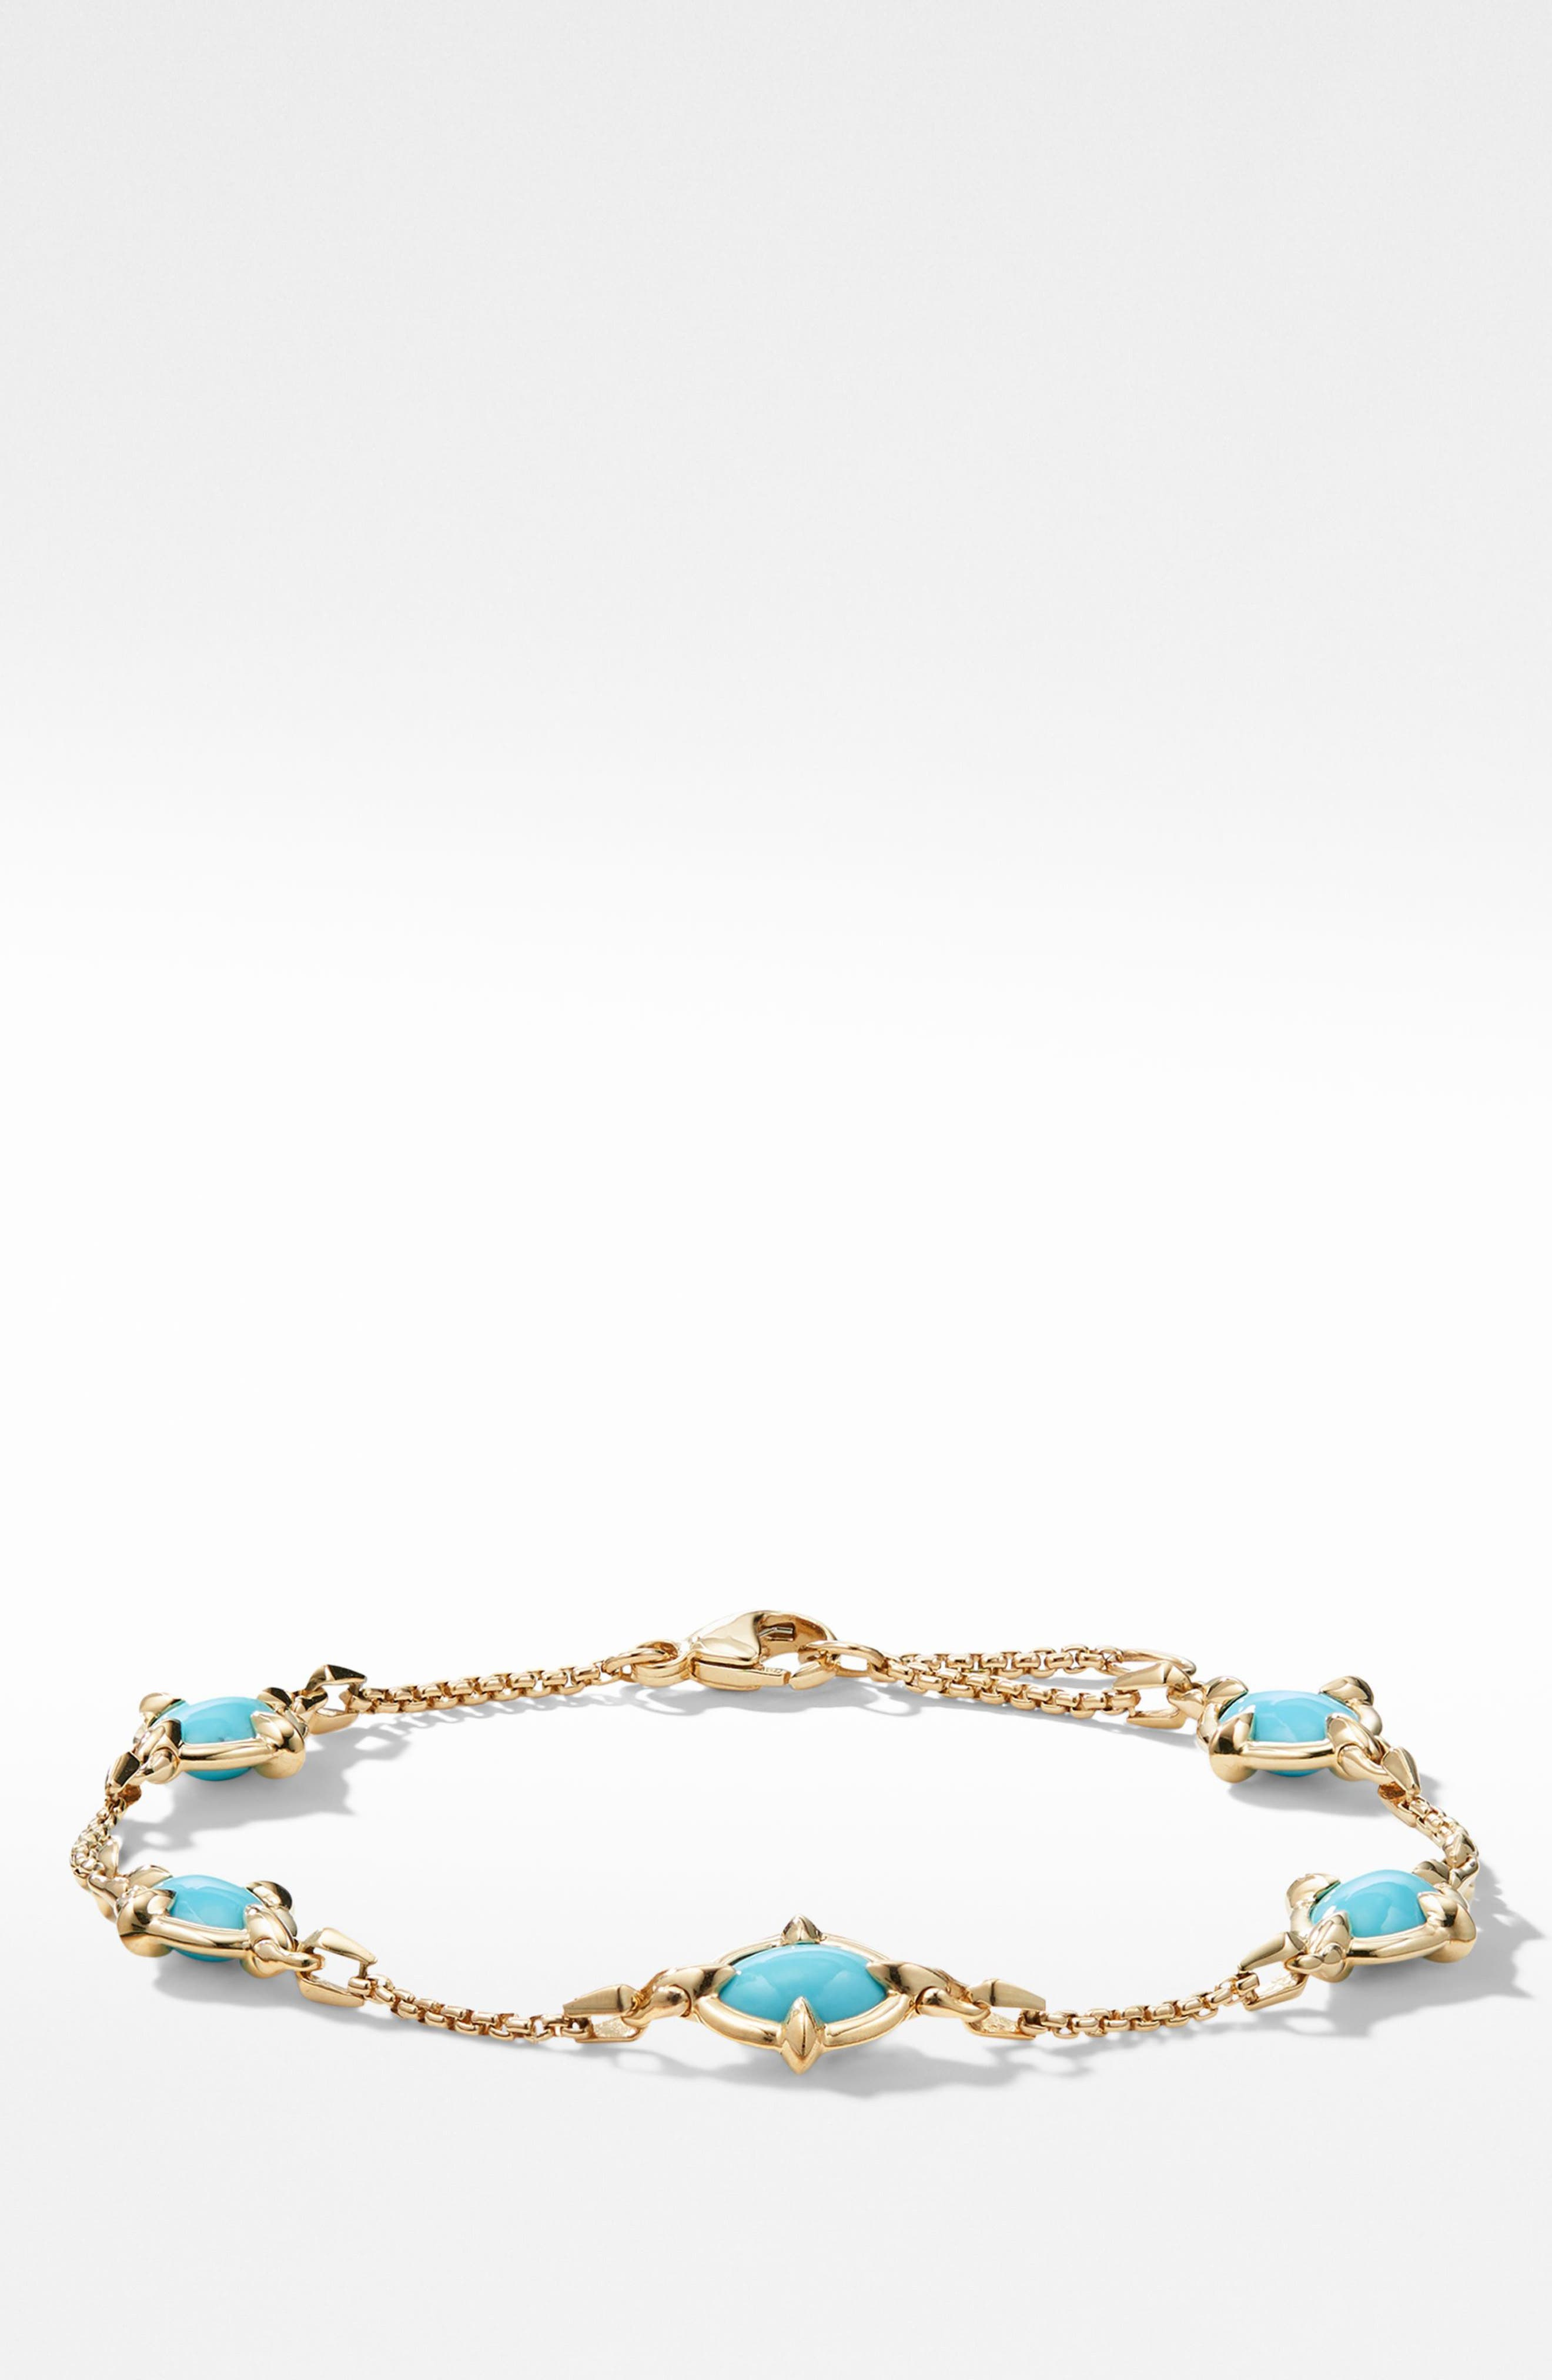 Chatelaine<sup>®</sup> Chain Bracelet in 18K Gold with Turquoise,                         Main,                         color, 440